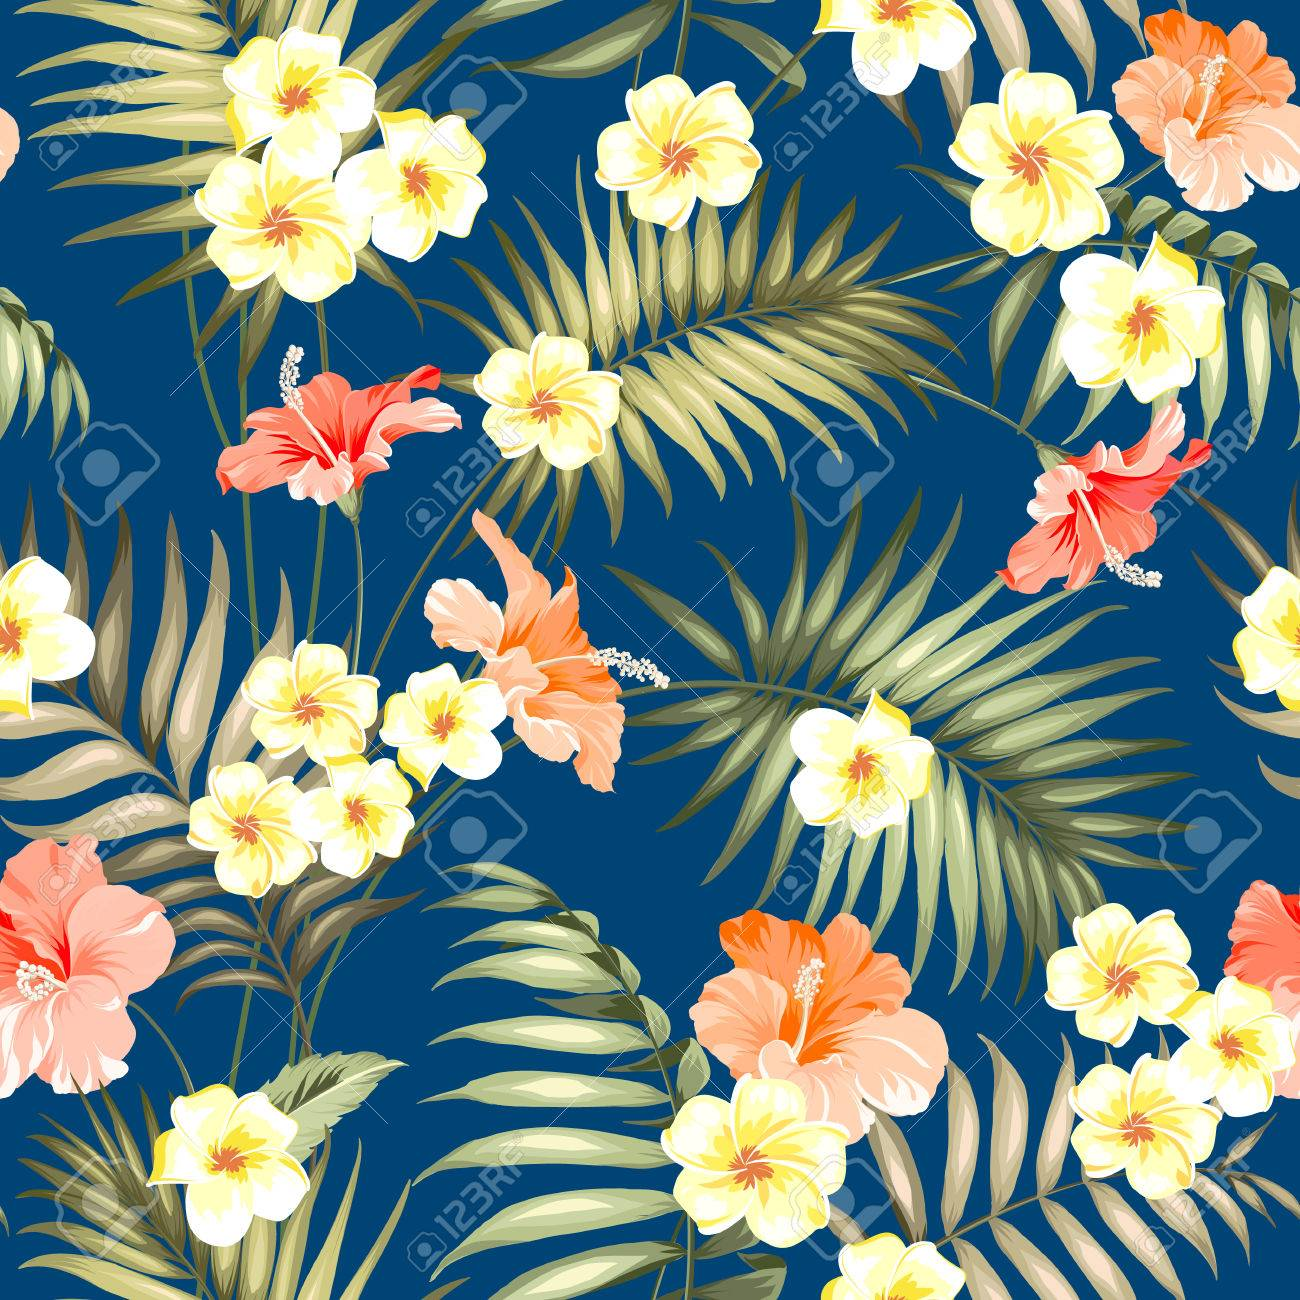 Tropical Plumeria And Jungle Palms Beautiful Fabric Pattern Royalty Free Cliparts Vectors And Stock Illustration Image 64466744